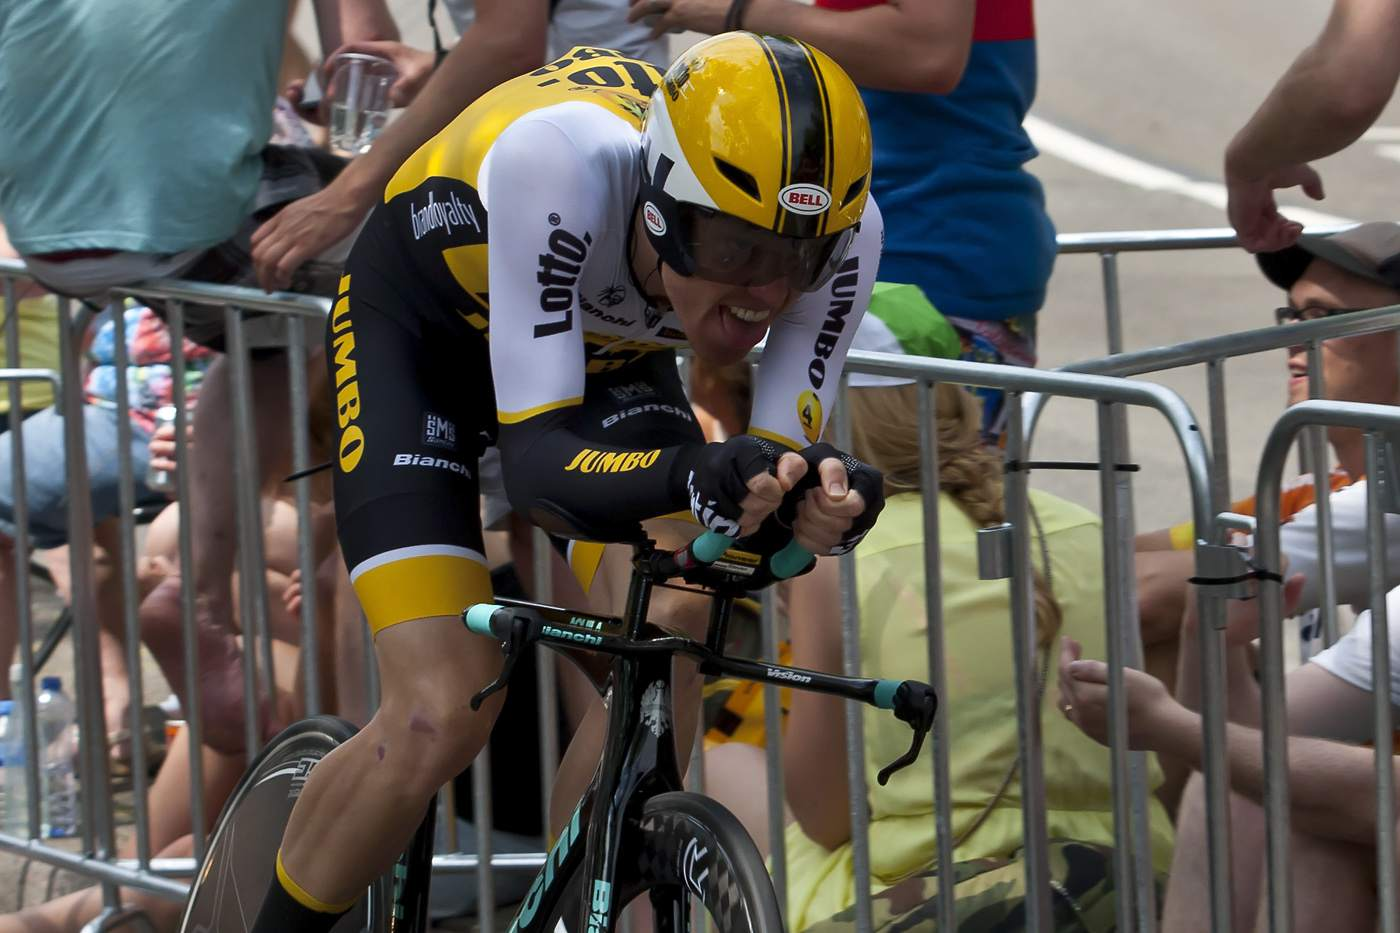 tour france 2015 pictures8 Tour de France 2015 in Pictures